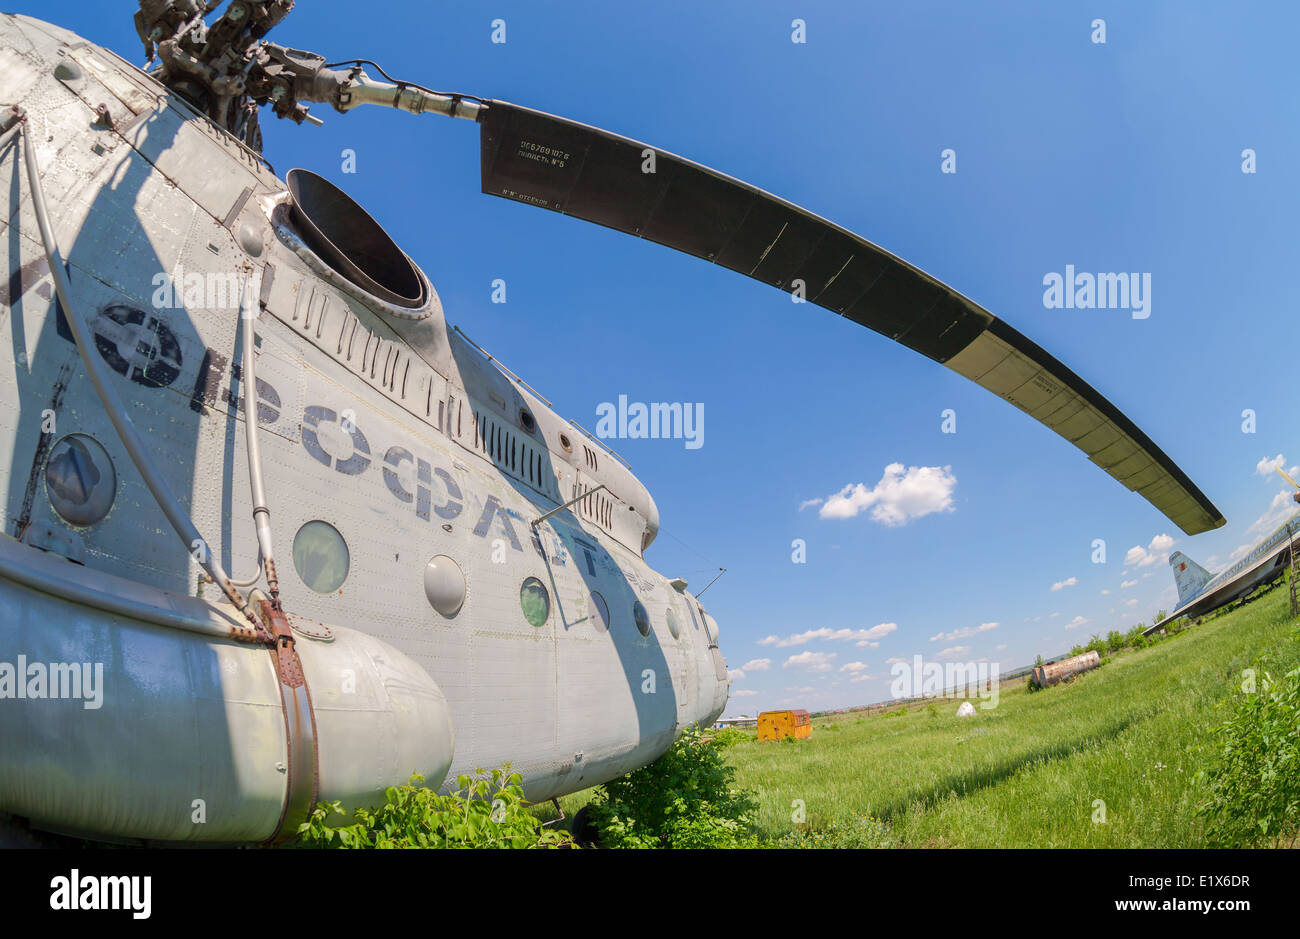 The russian heavy transport helicopter Mi-6 at an abandoned aerodrome. The Mil Mi-6 was built in large numbers for - Stock Image